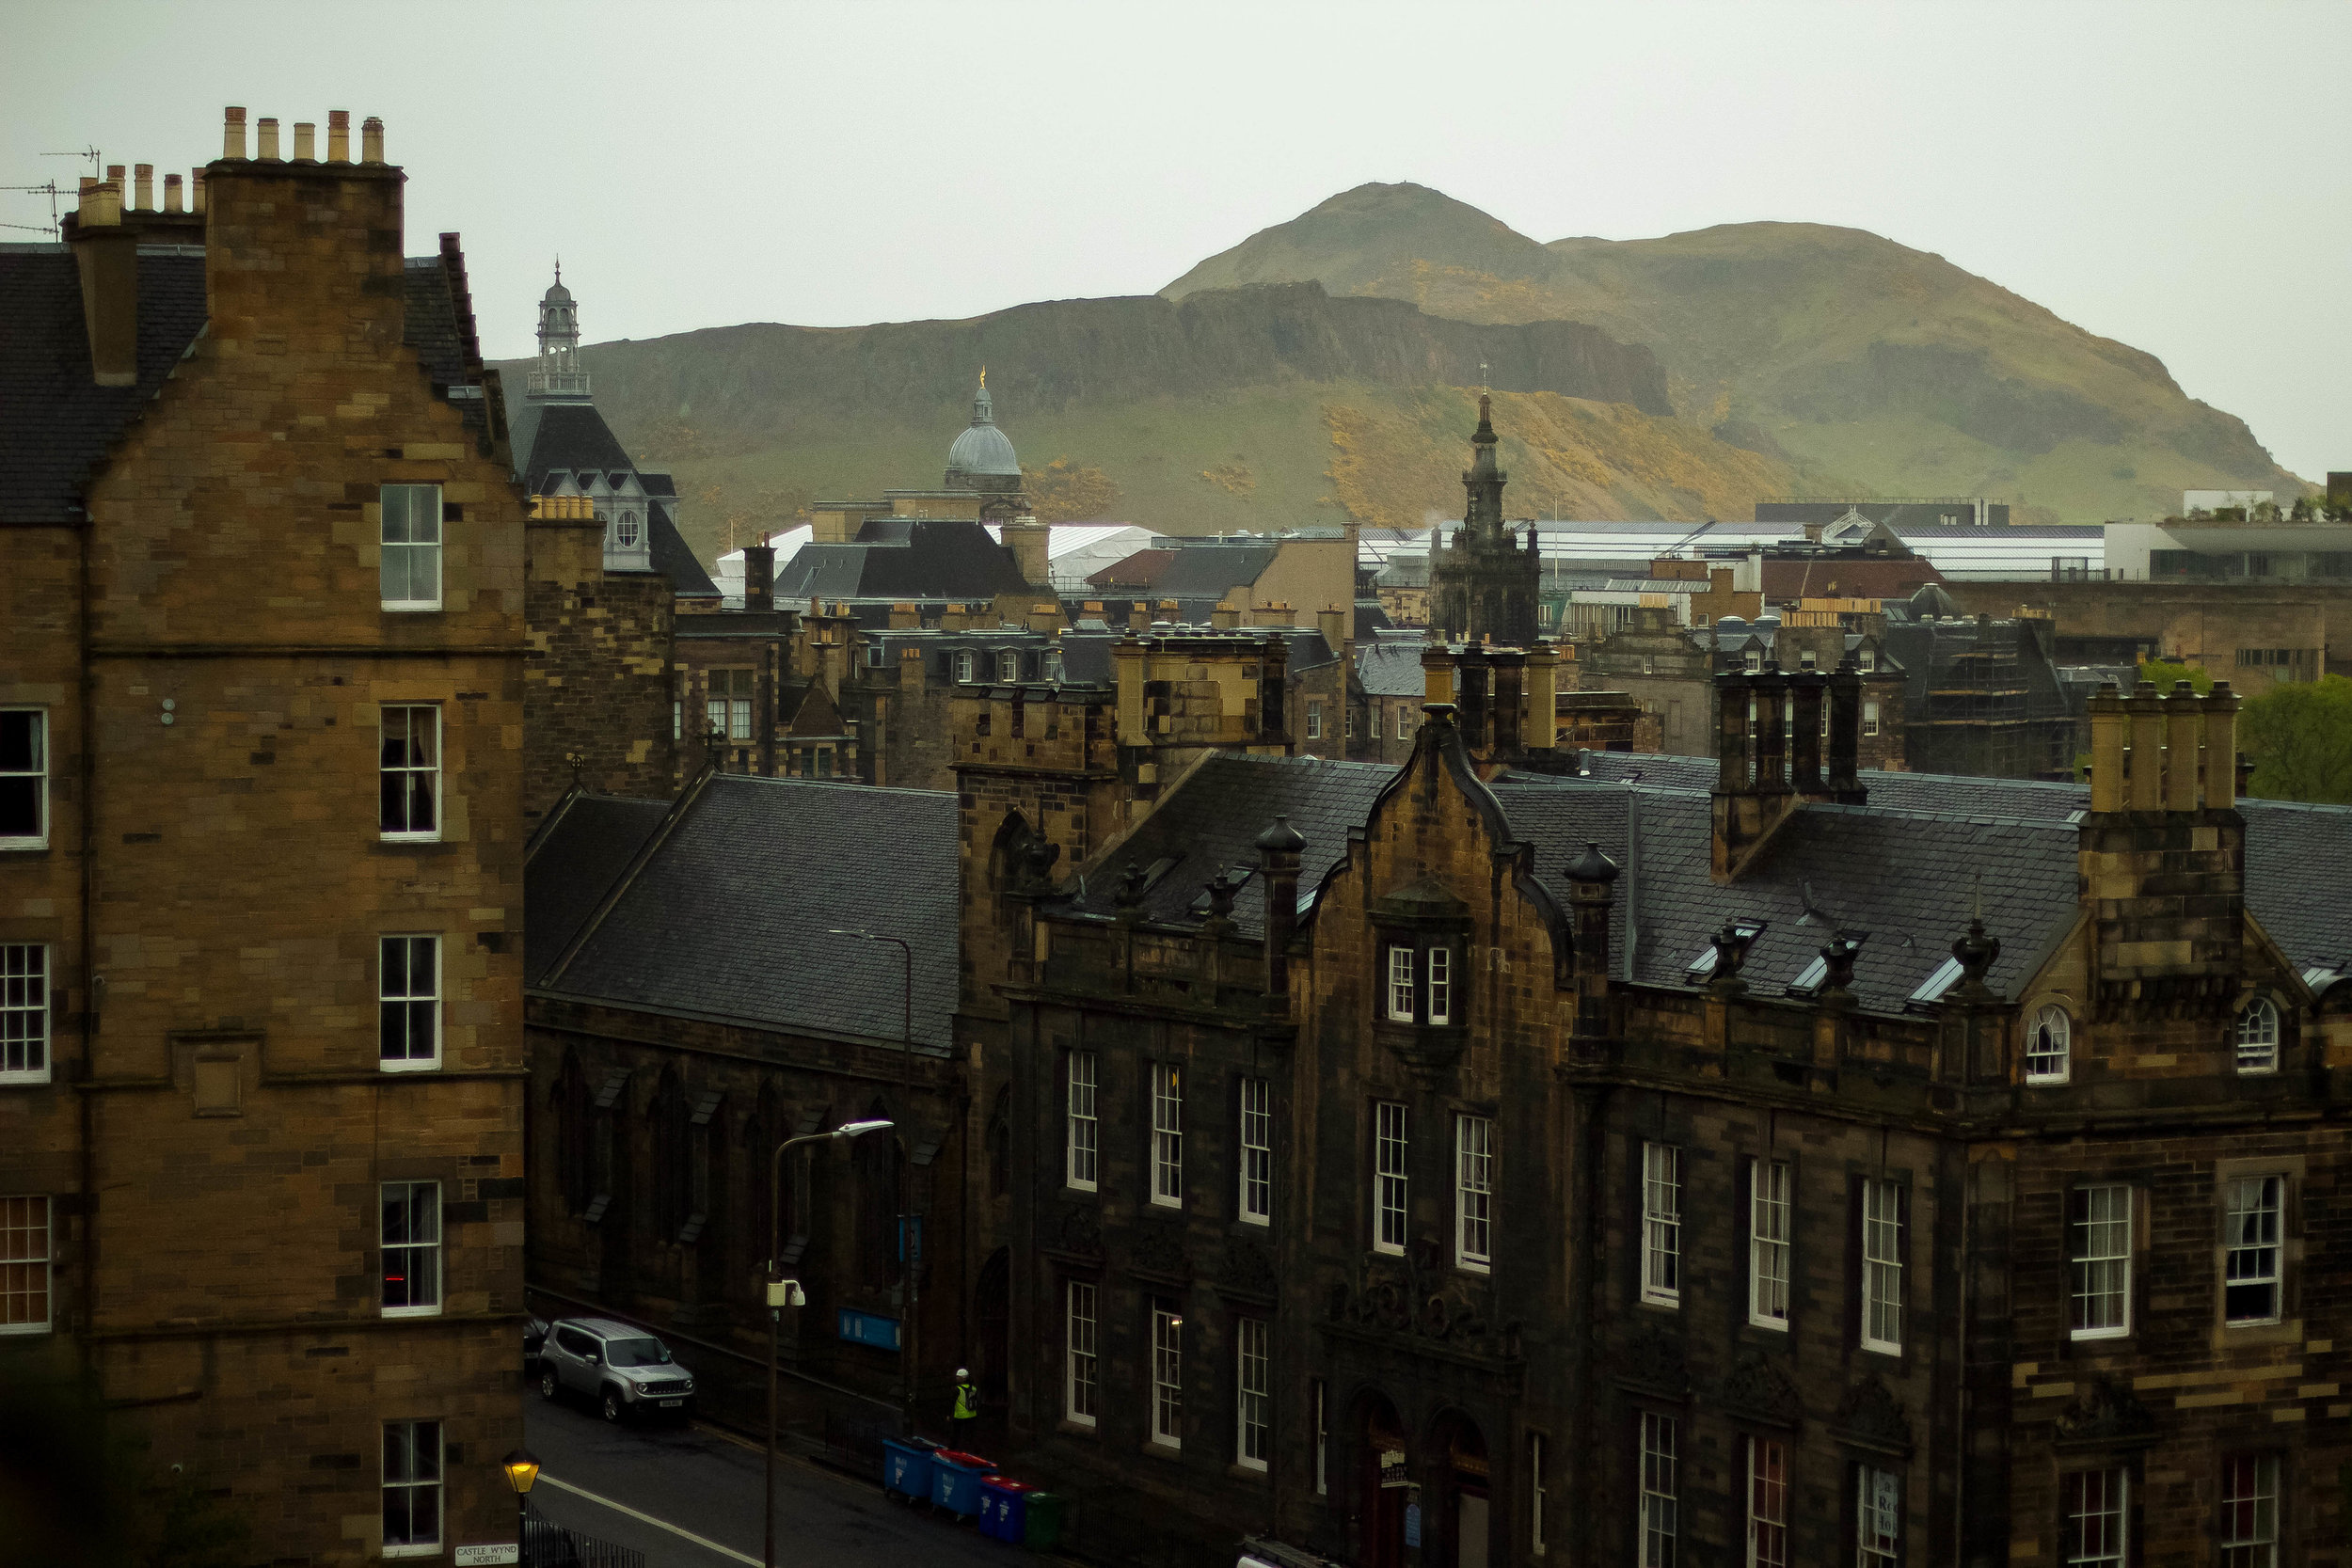 Part of the view from Edinburgh Castle